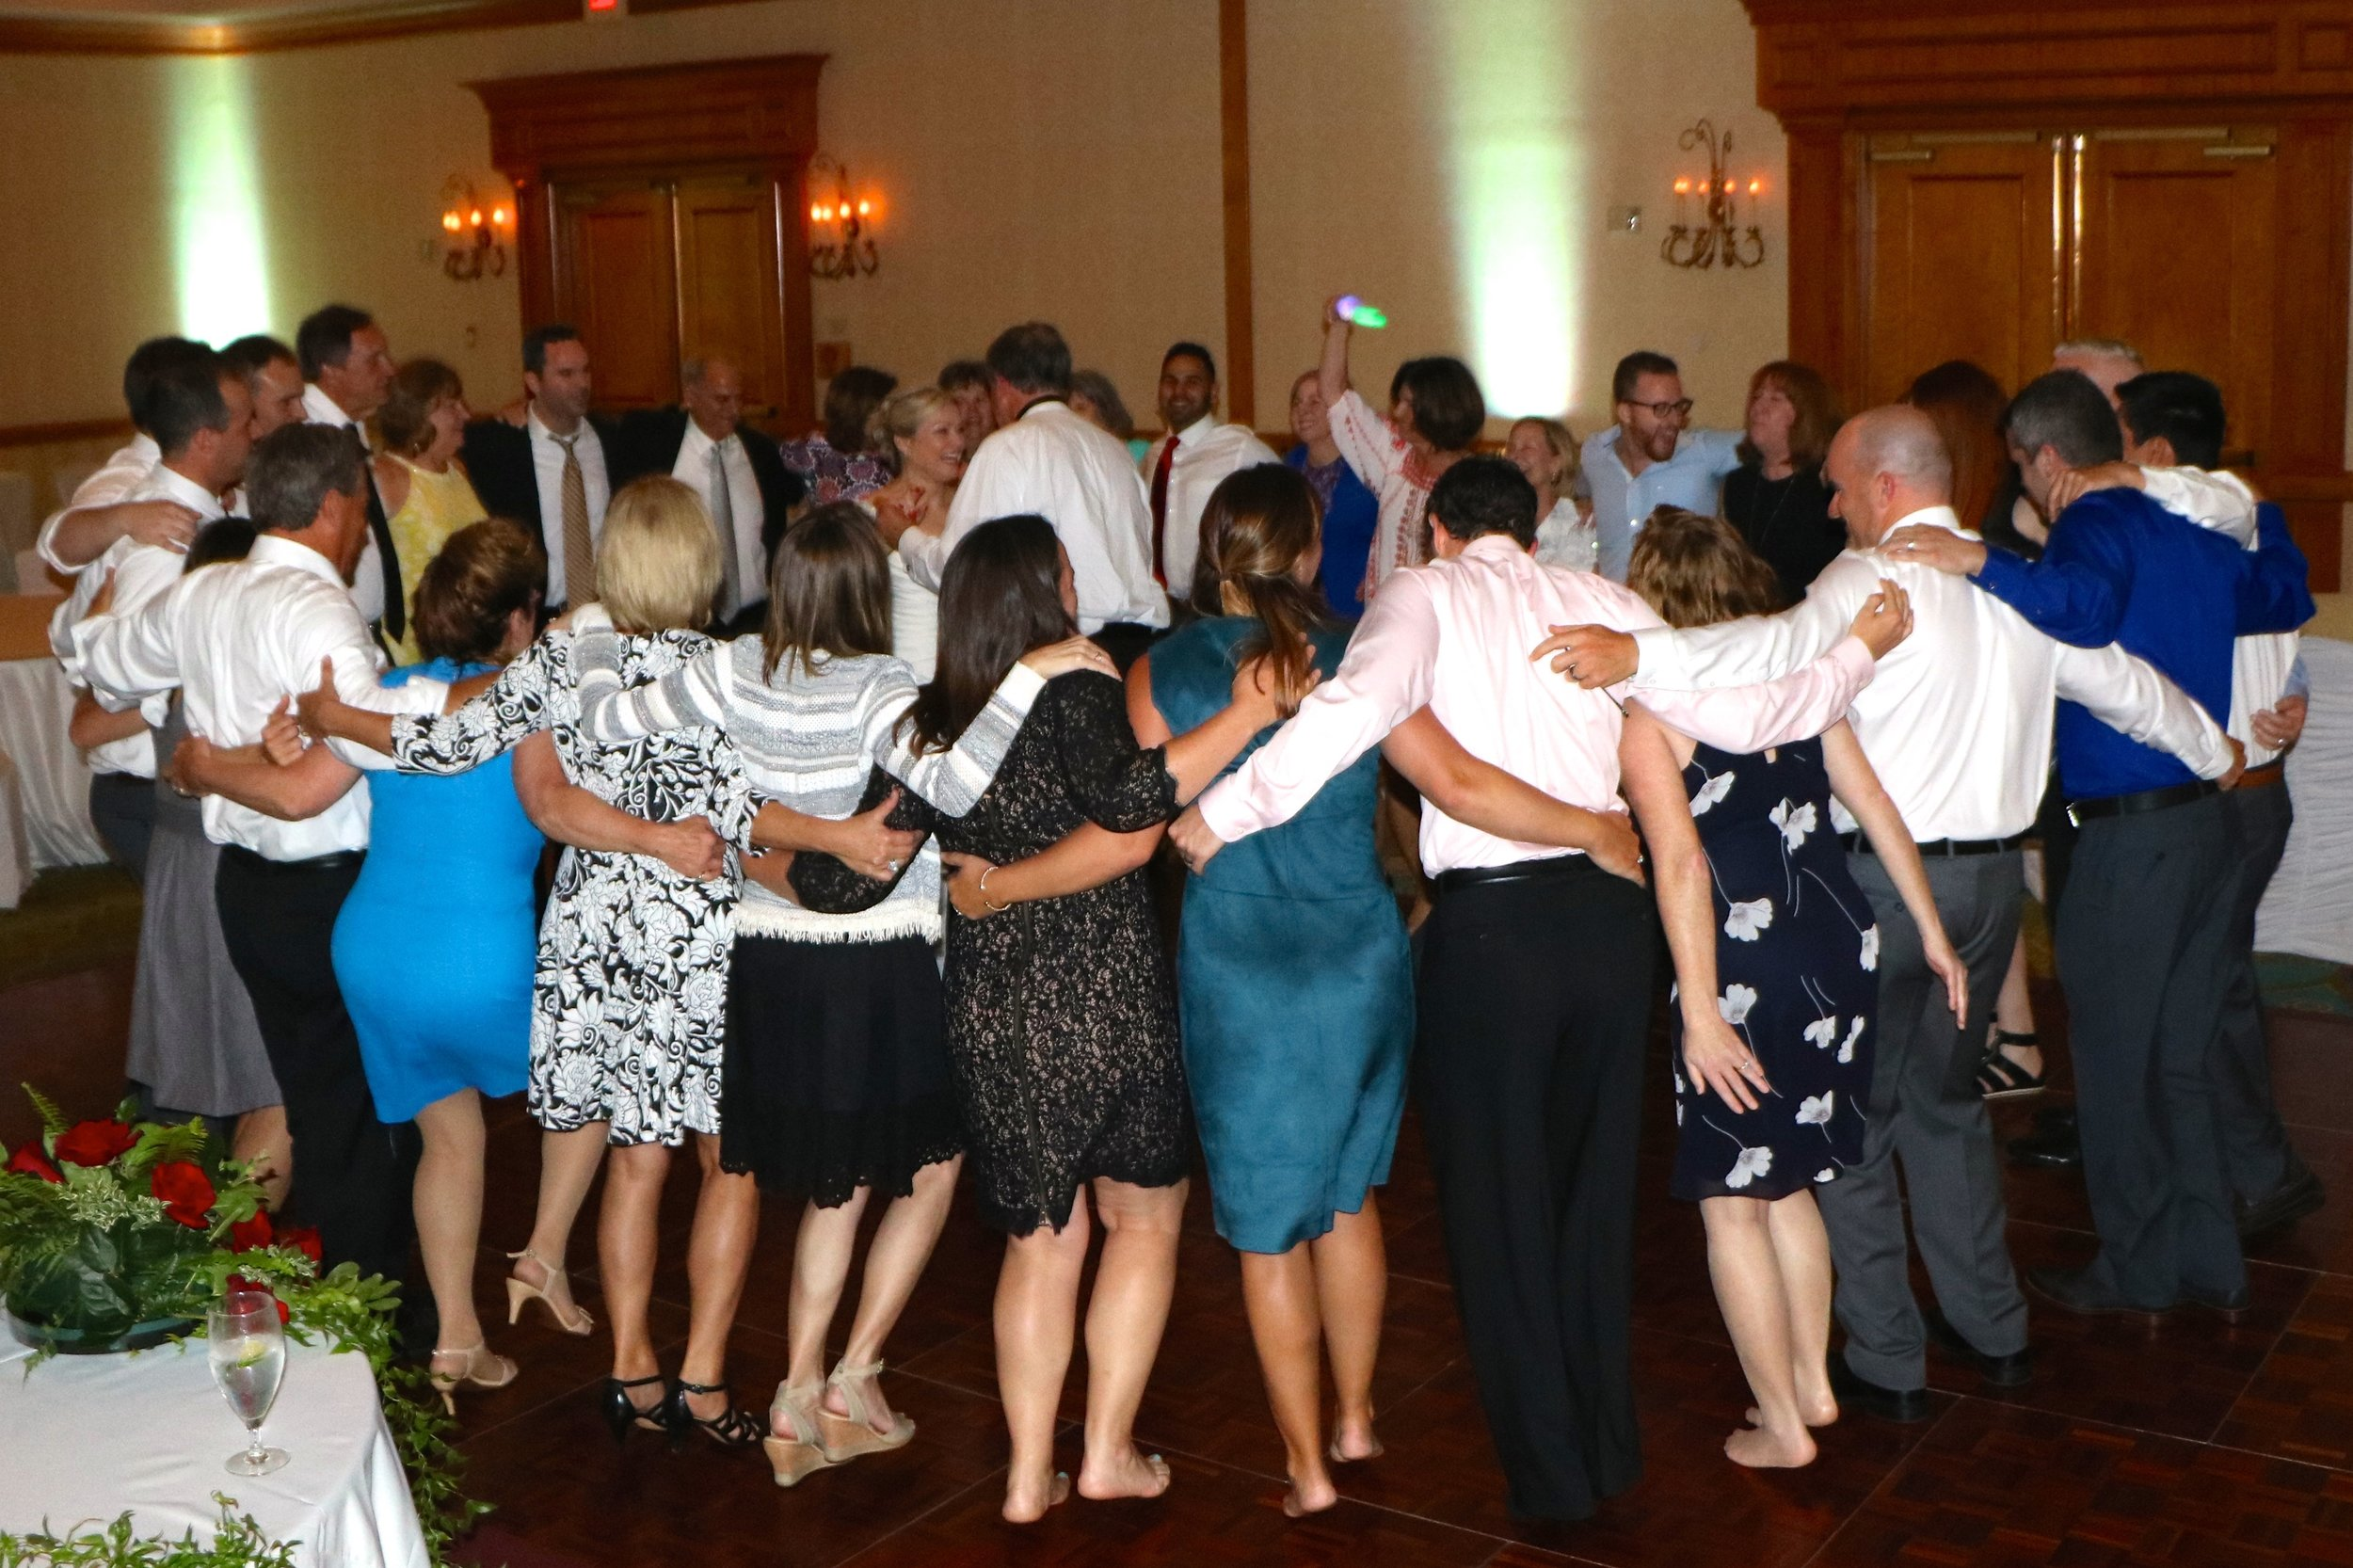 Annette & Earl by Indianapolis Wedding DJ Jim Cerone